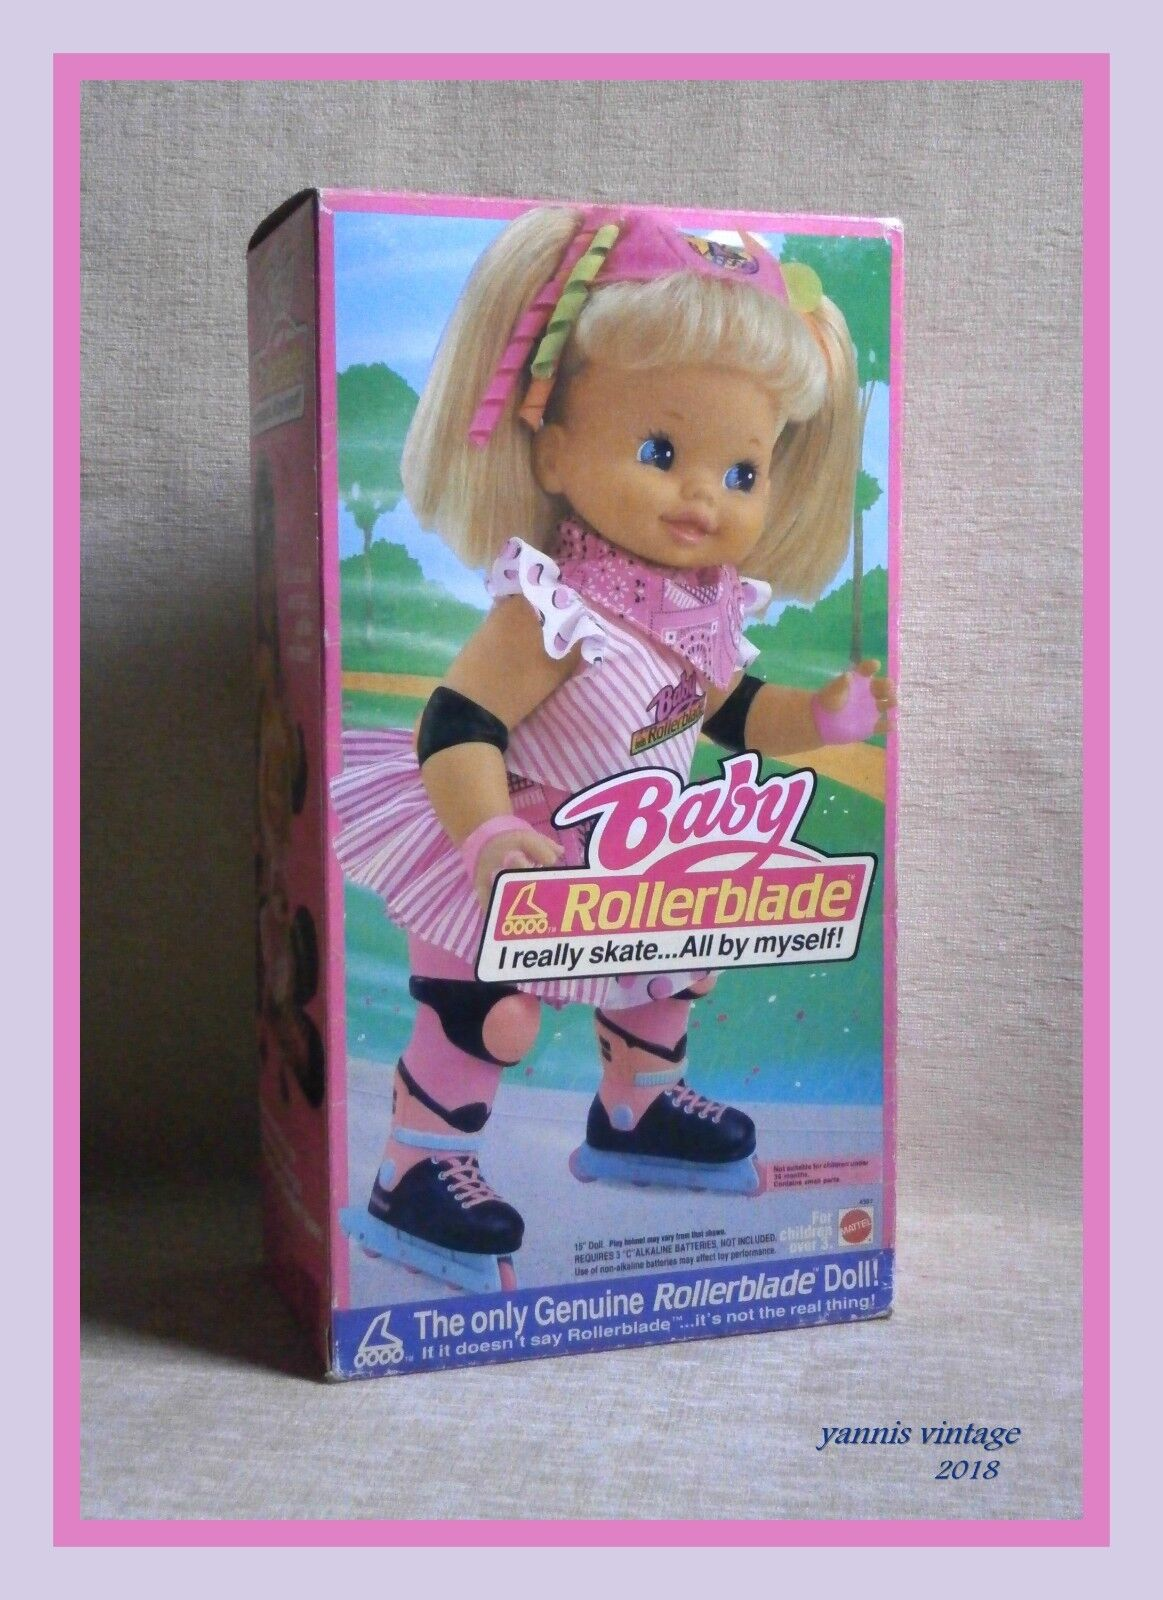 Baby Rollerblade  Bambola Nuovo con Scatola MATTEL B O MADE IN ITALY 1991